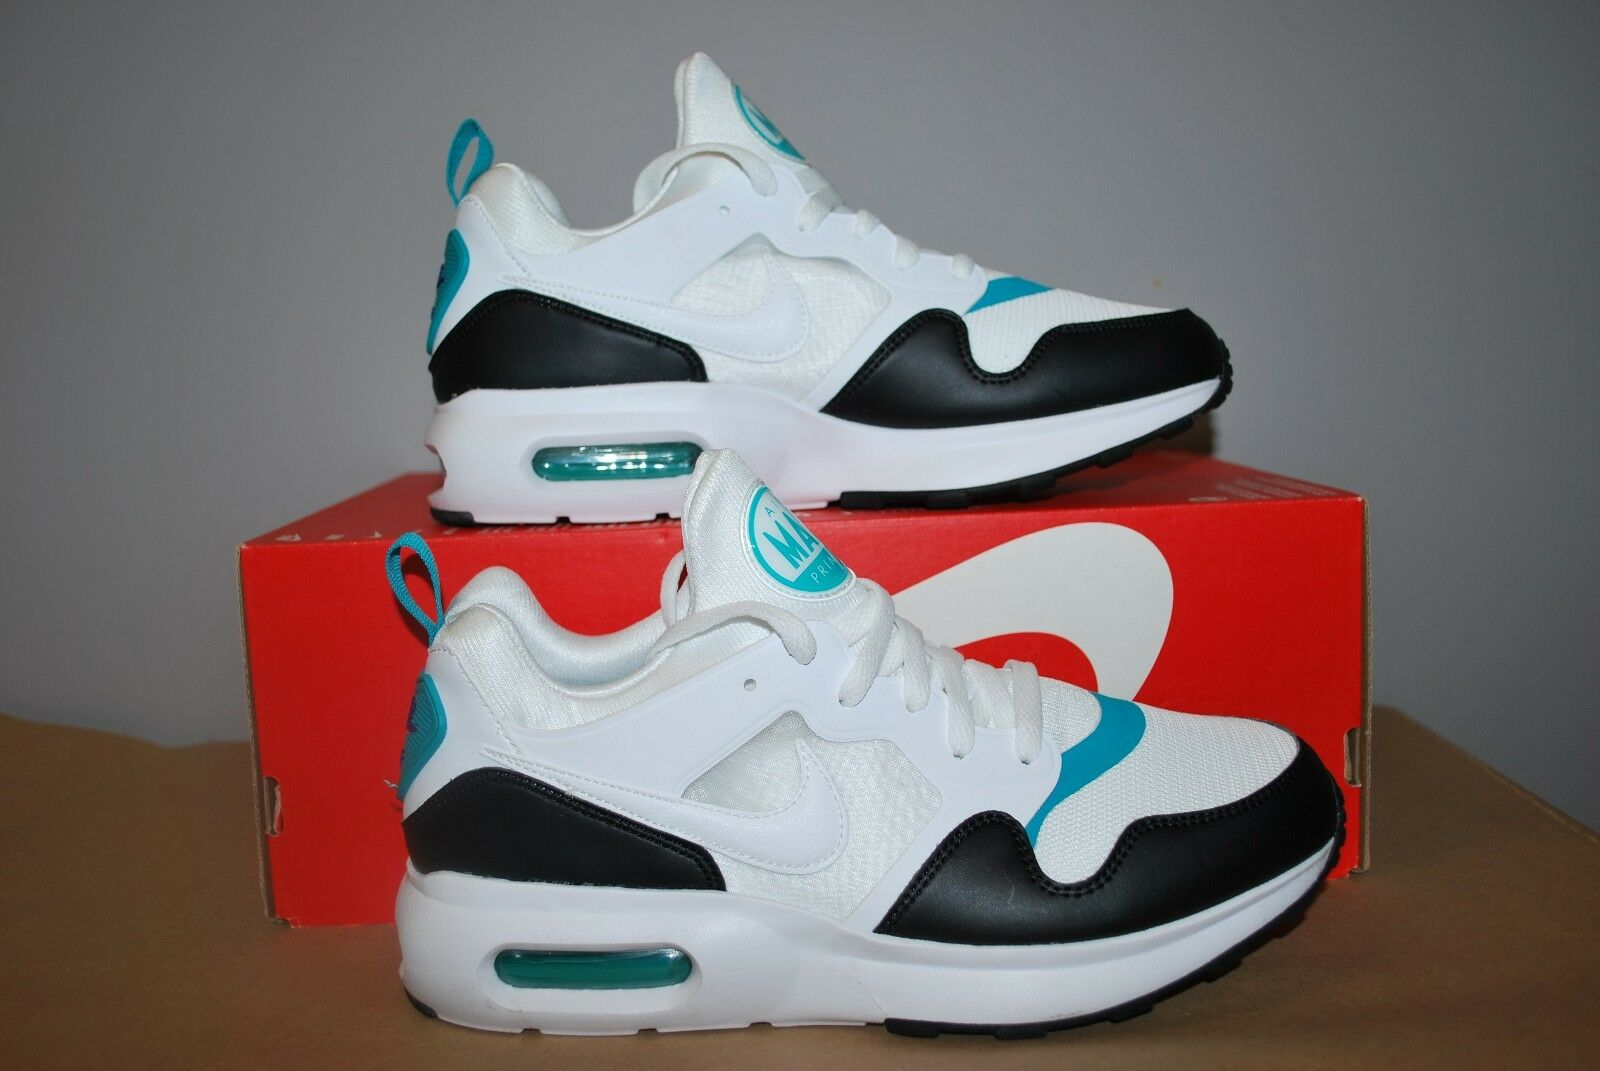 8c5fbbb4c09a8 Nike Air Max Prime Running Shoes White Turbo White Turbo White Turbo Green